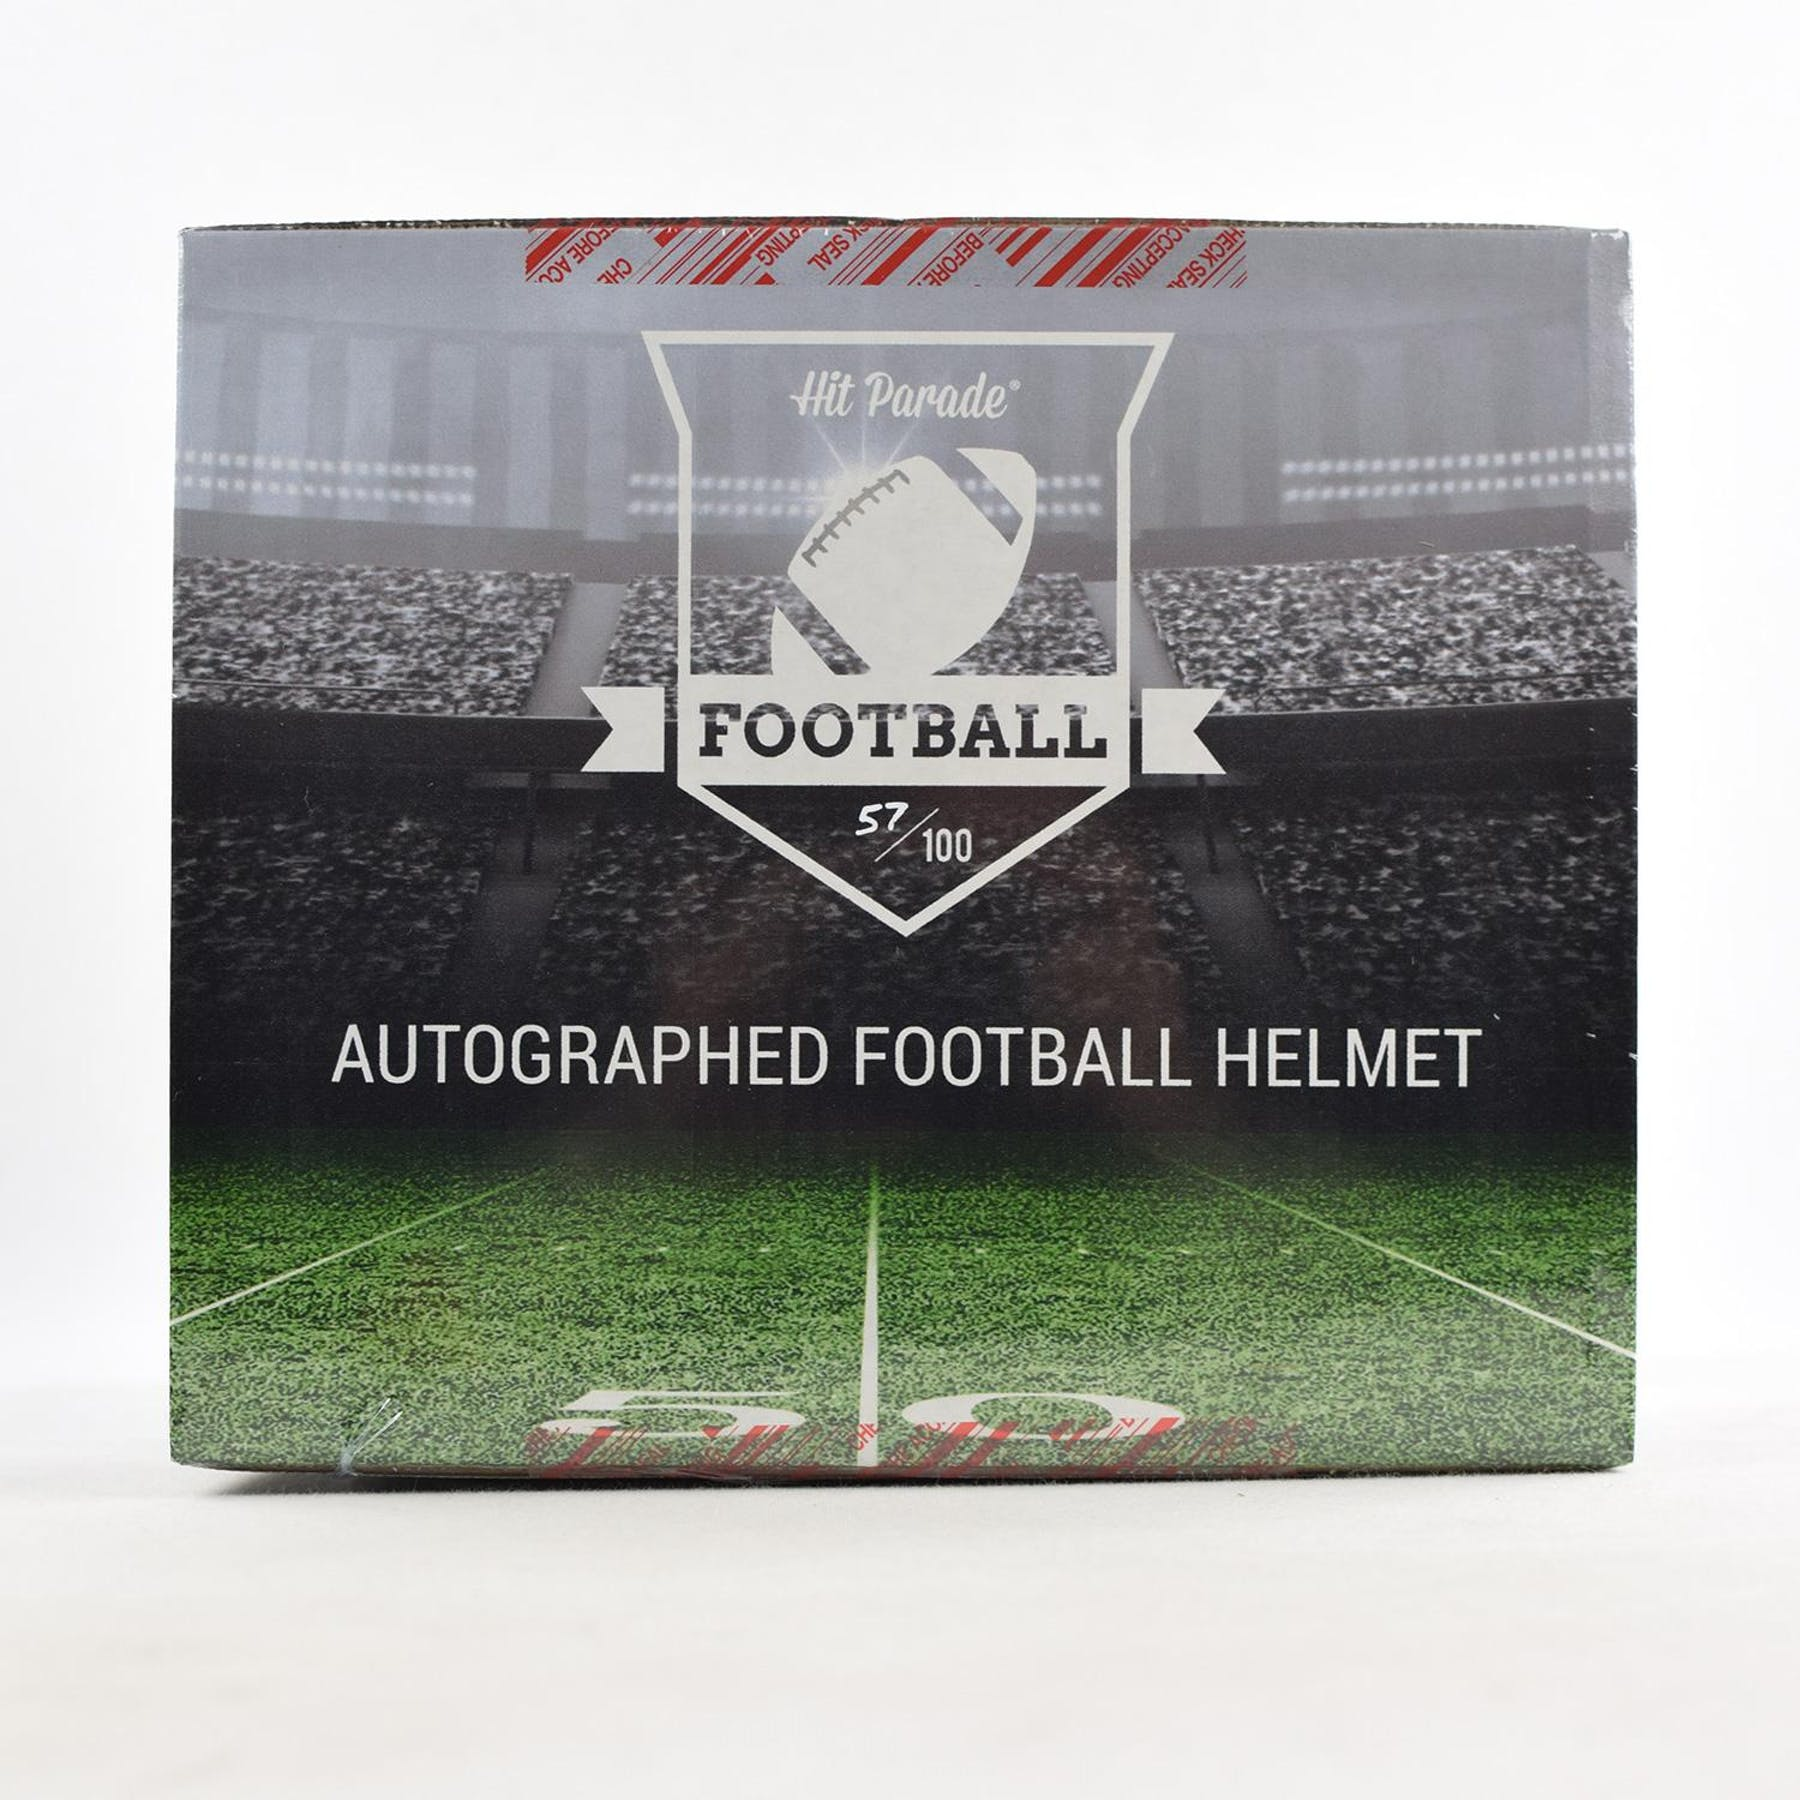 ... 2018 Hit Parade Autographed Full Size Football Helmet Hobby Box -  Series 41 - Peyton Manning ... fdfc2daba